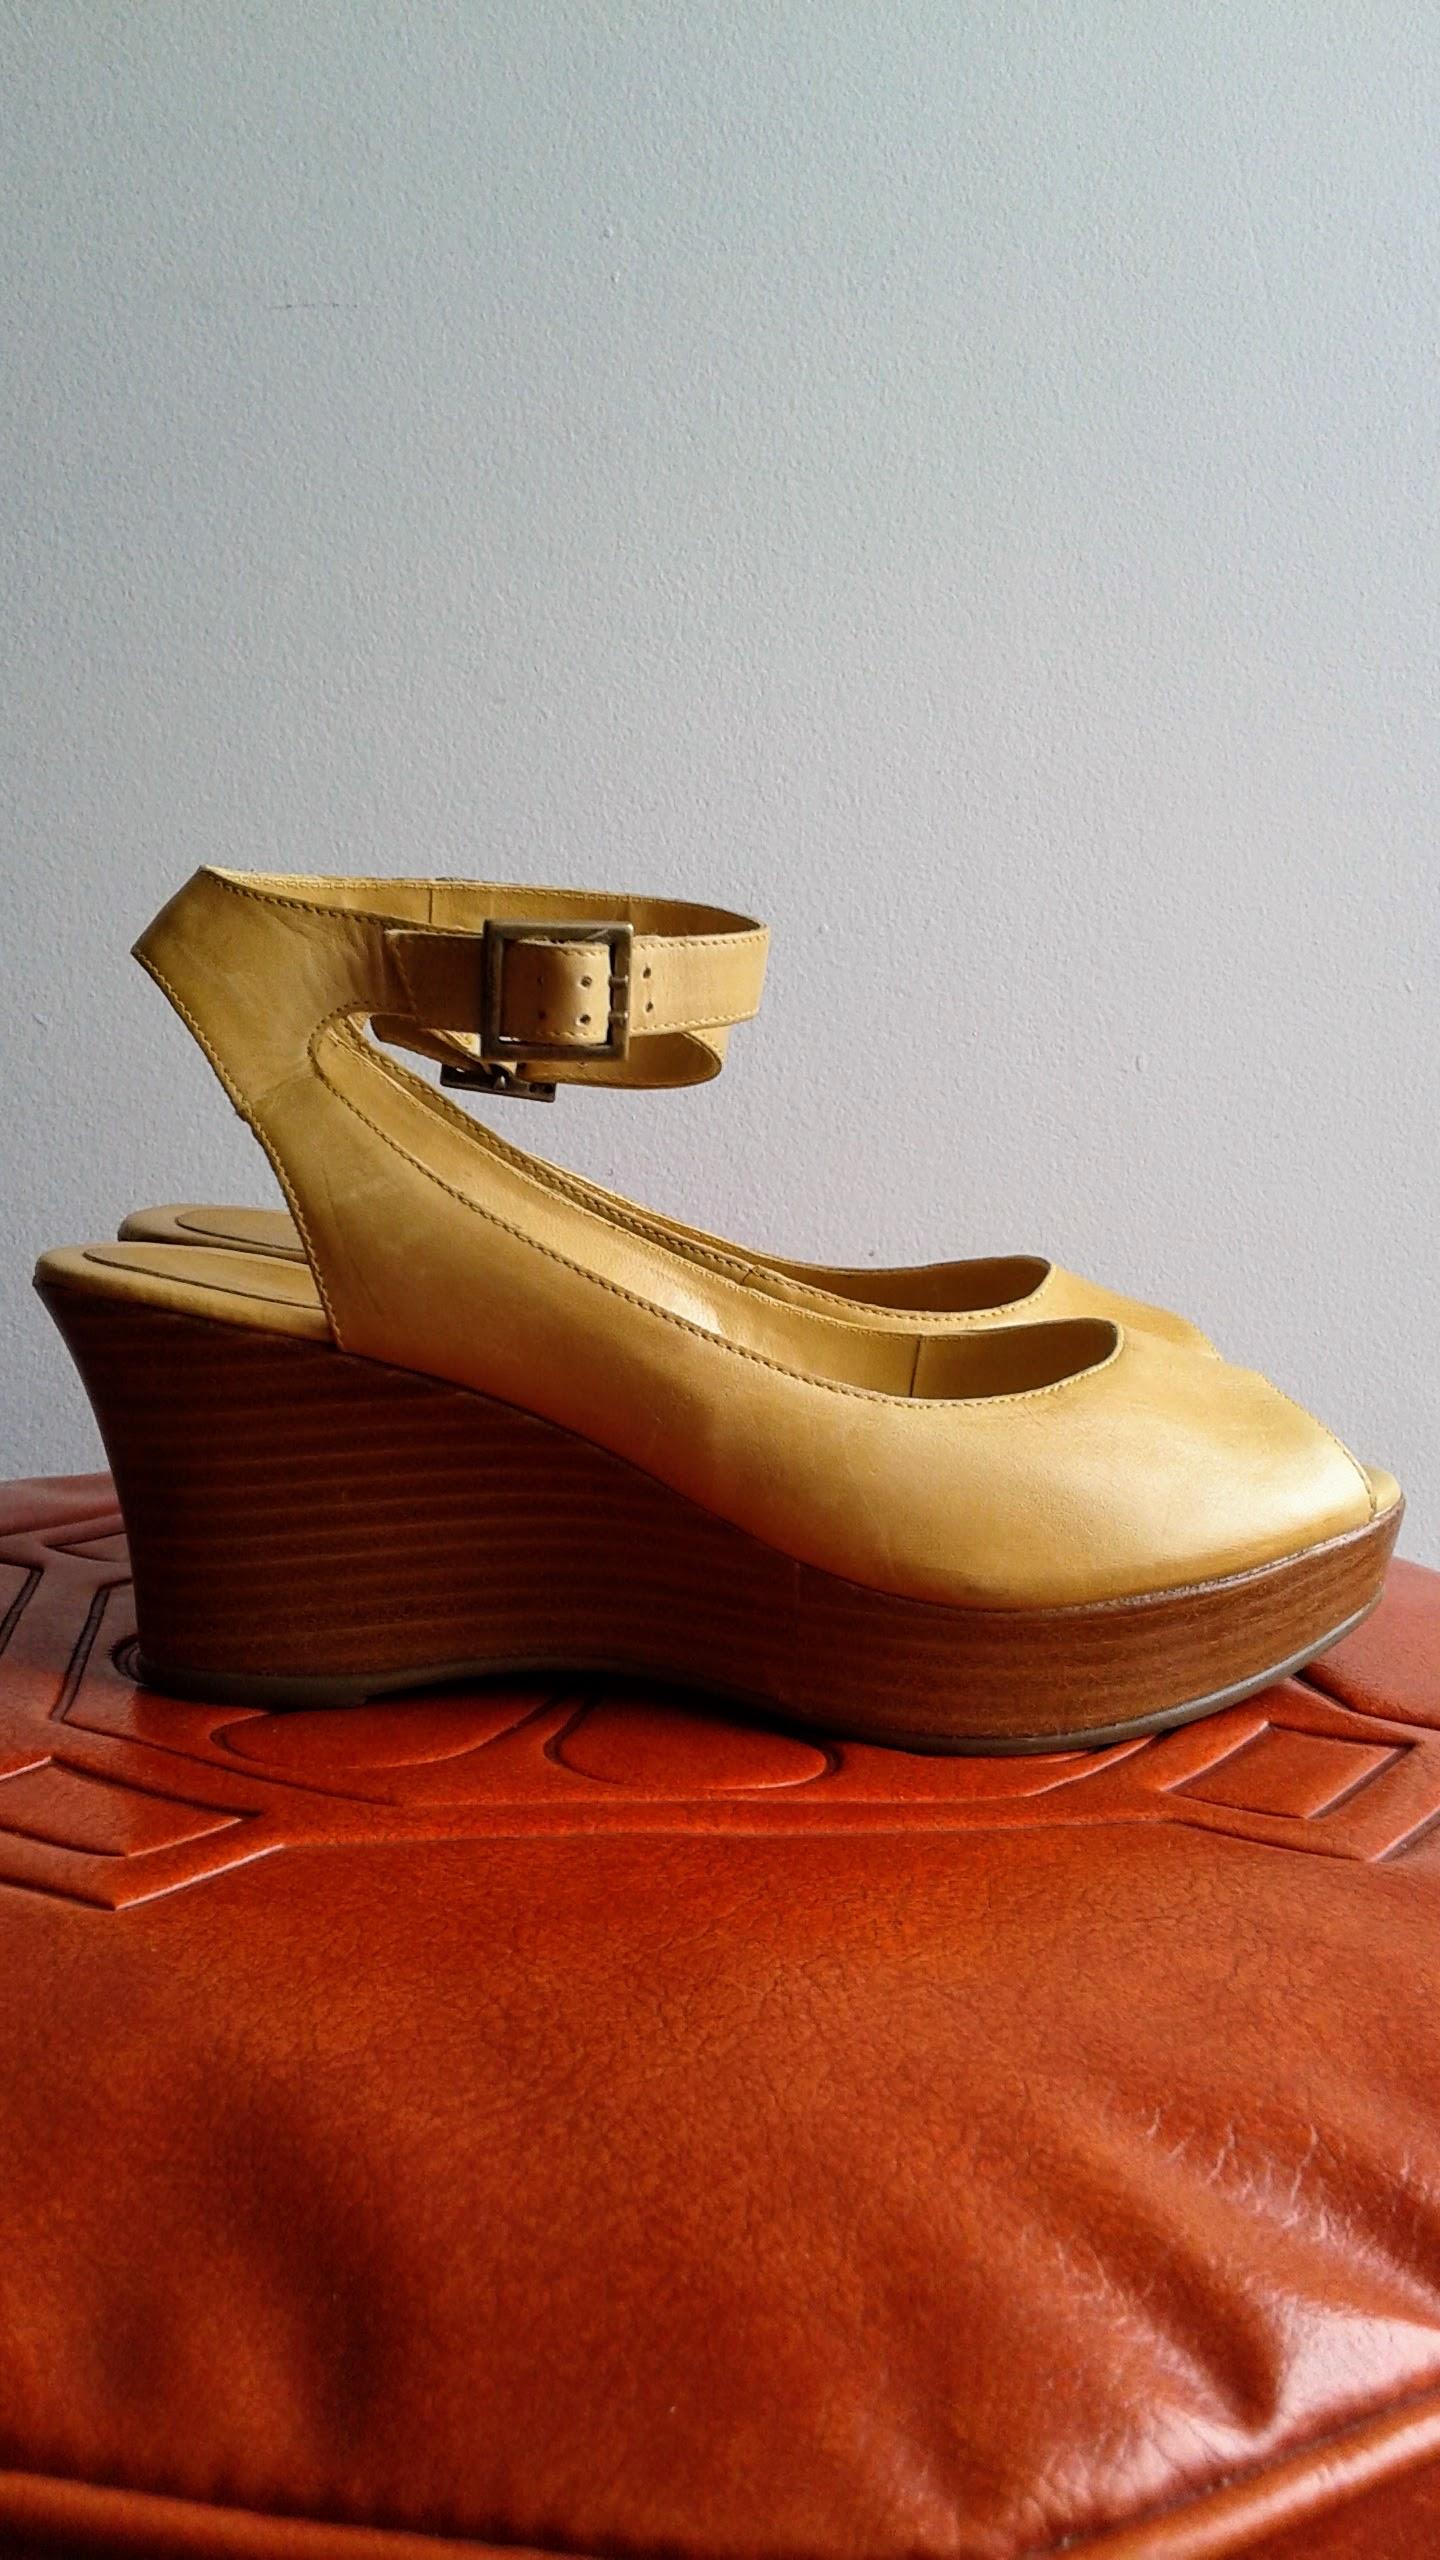 Bos & Co  shoes; S6.5, $42